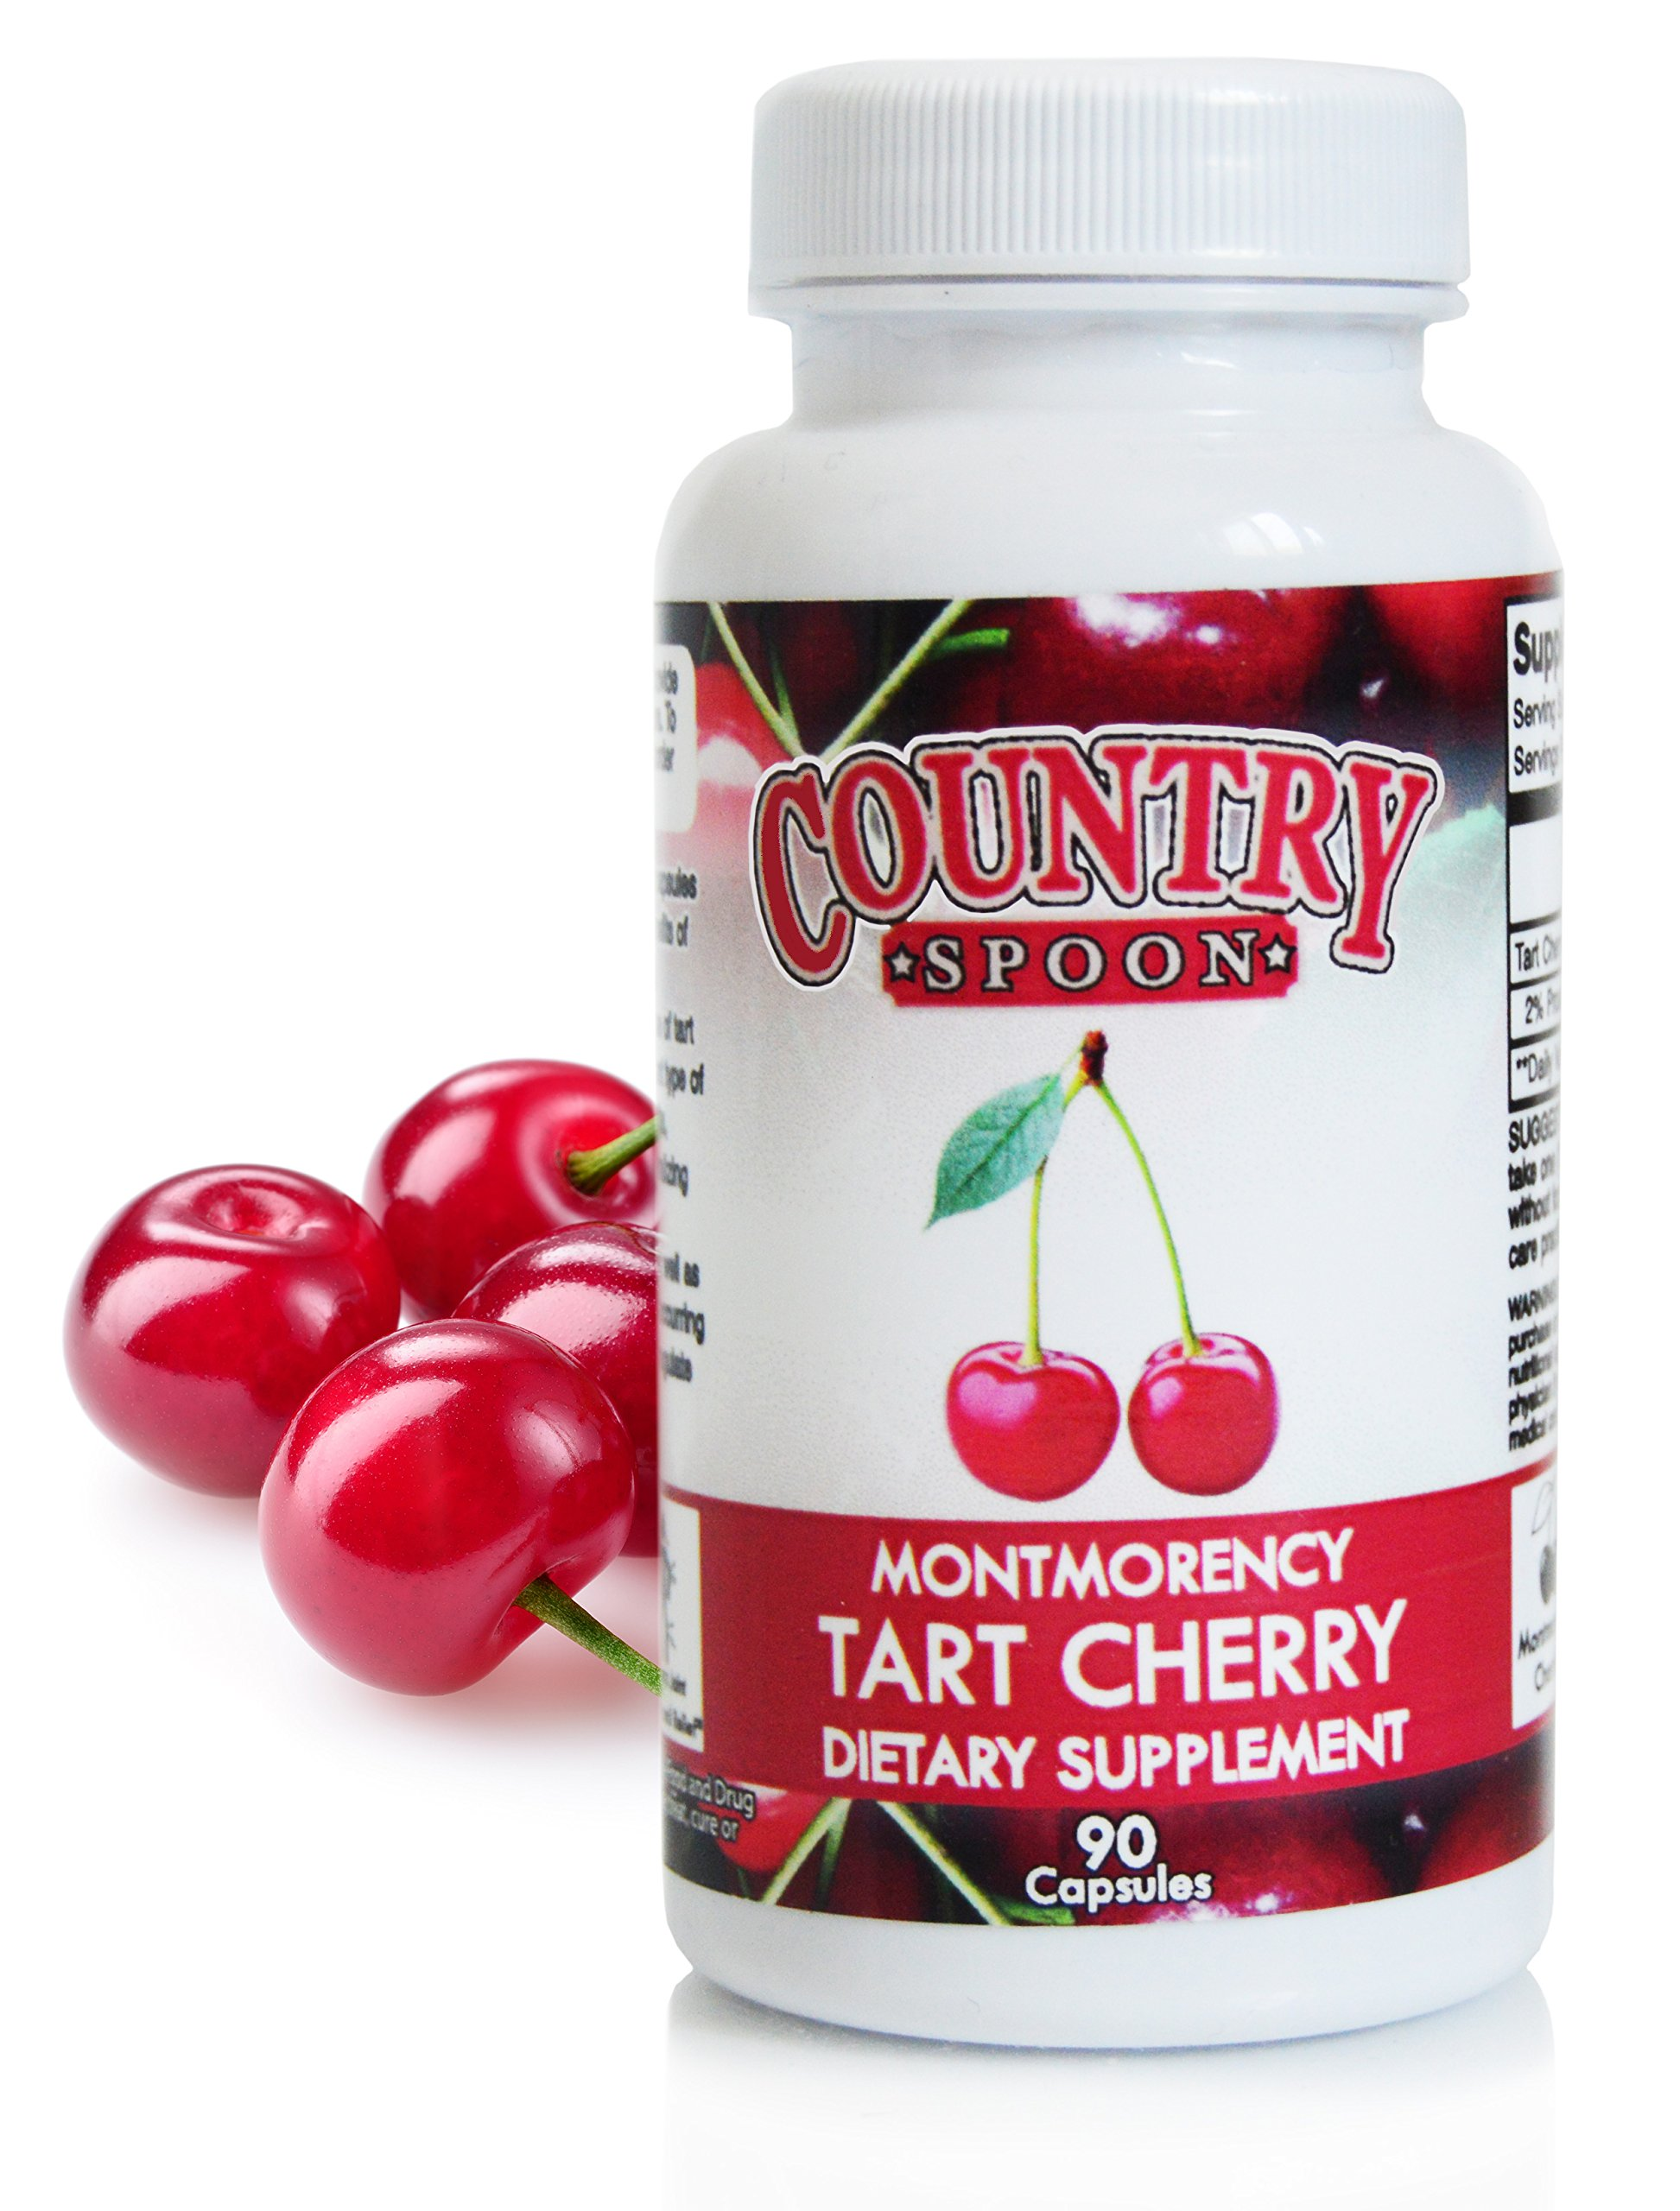 Watch 30 Days Of Superfoods: Tart Cherries For Pain Relief video